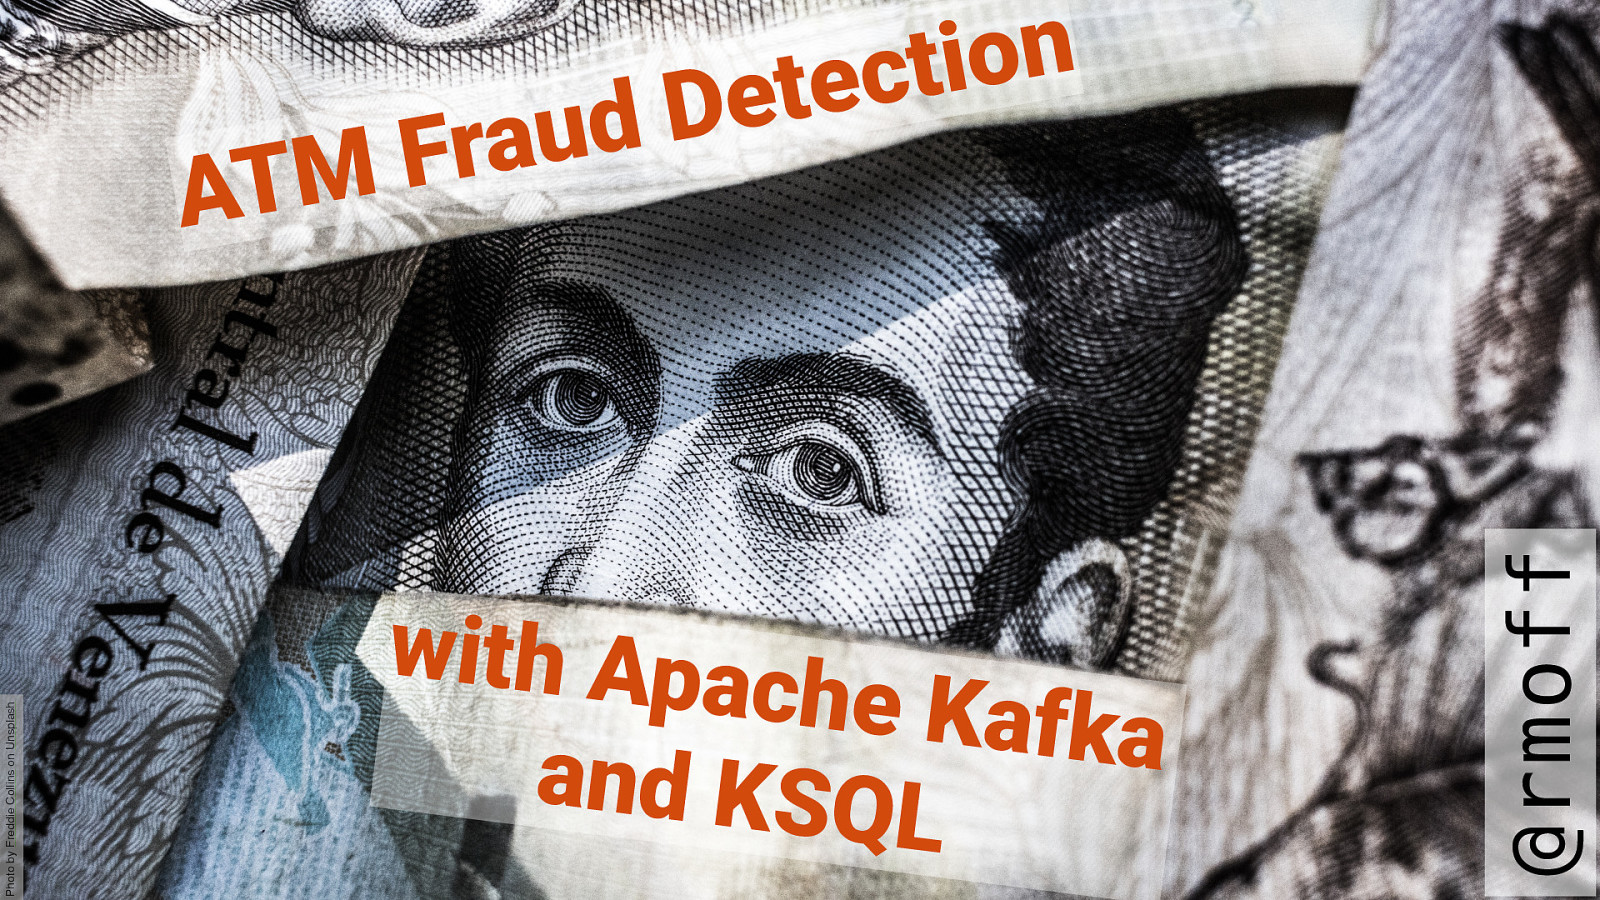 ATM Fraud detection with Kafka and KSQL